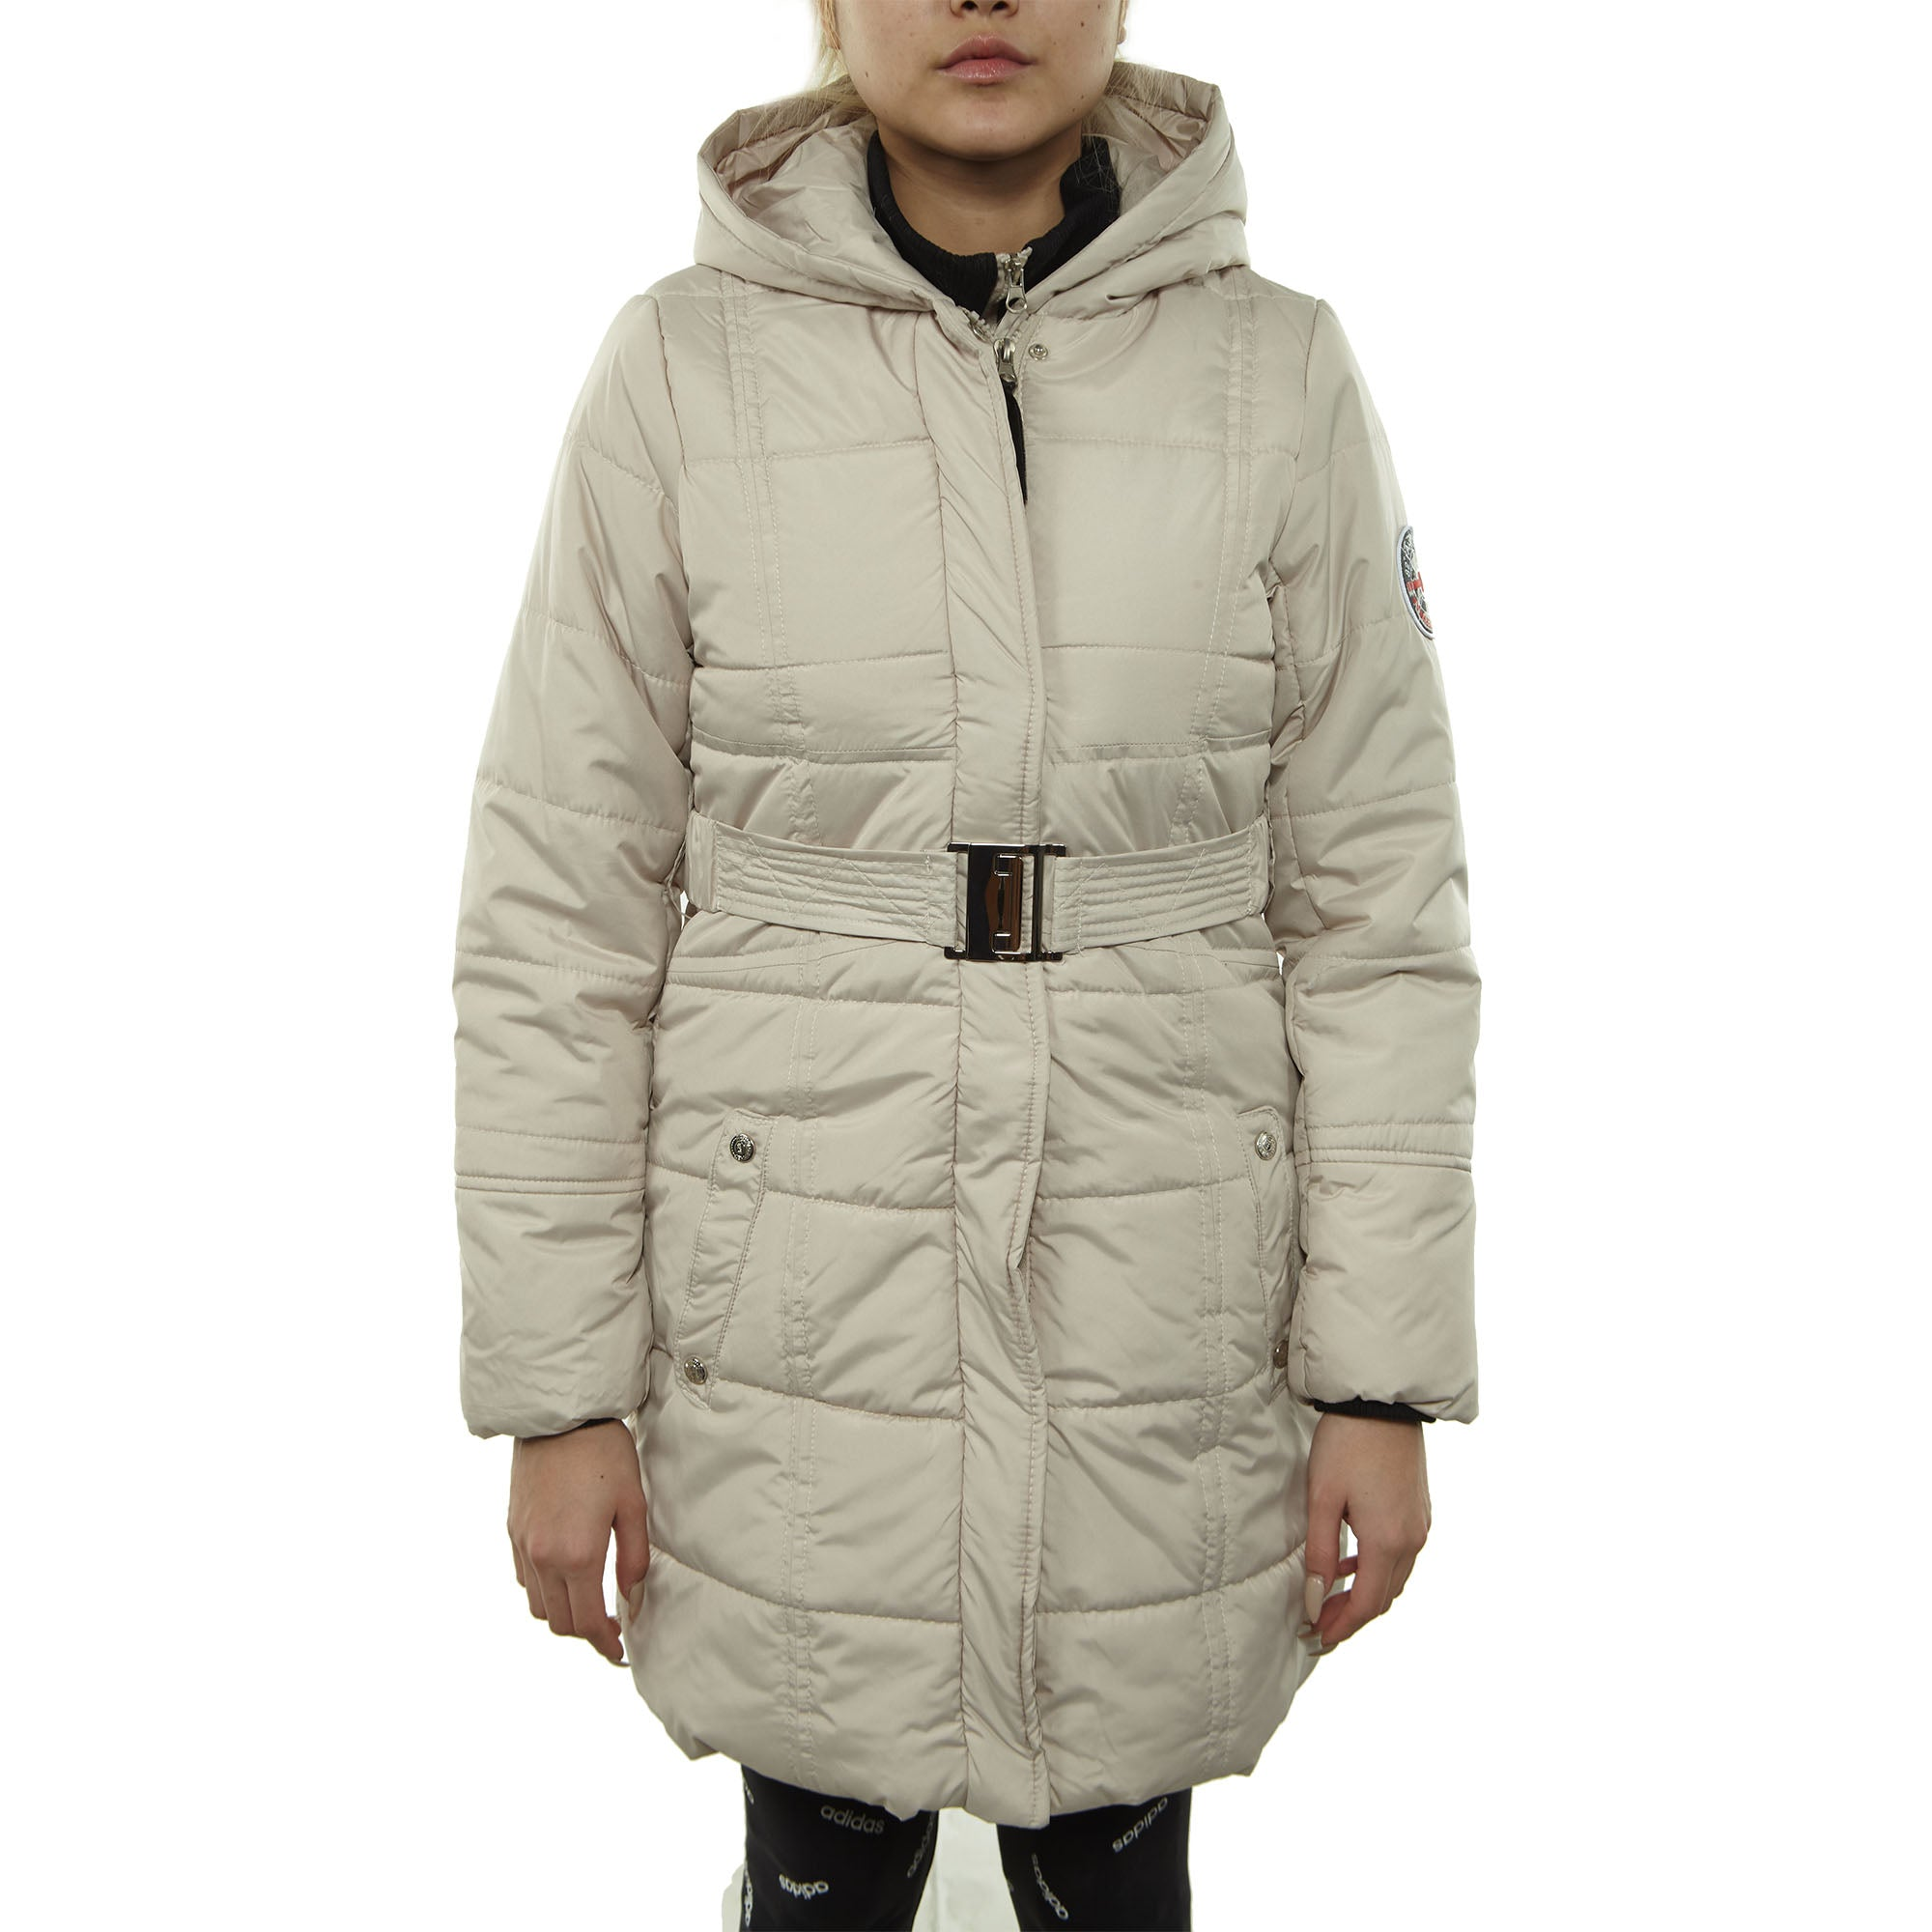 82 Degrees Fahrenheit Down Jacket Womens Style 30227 Sneaker Experts